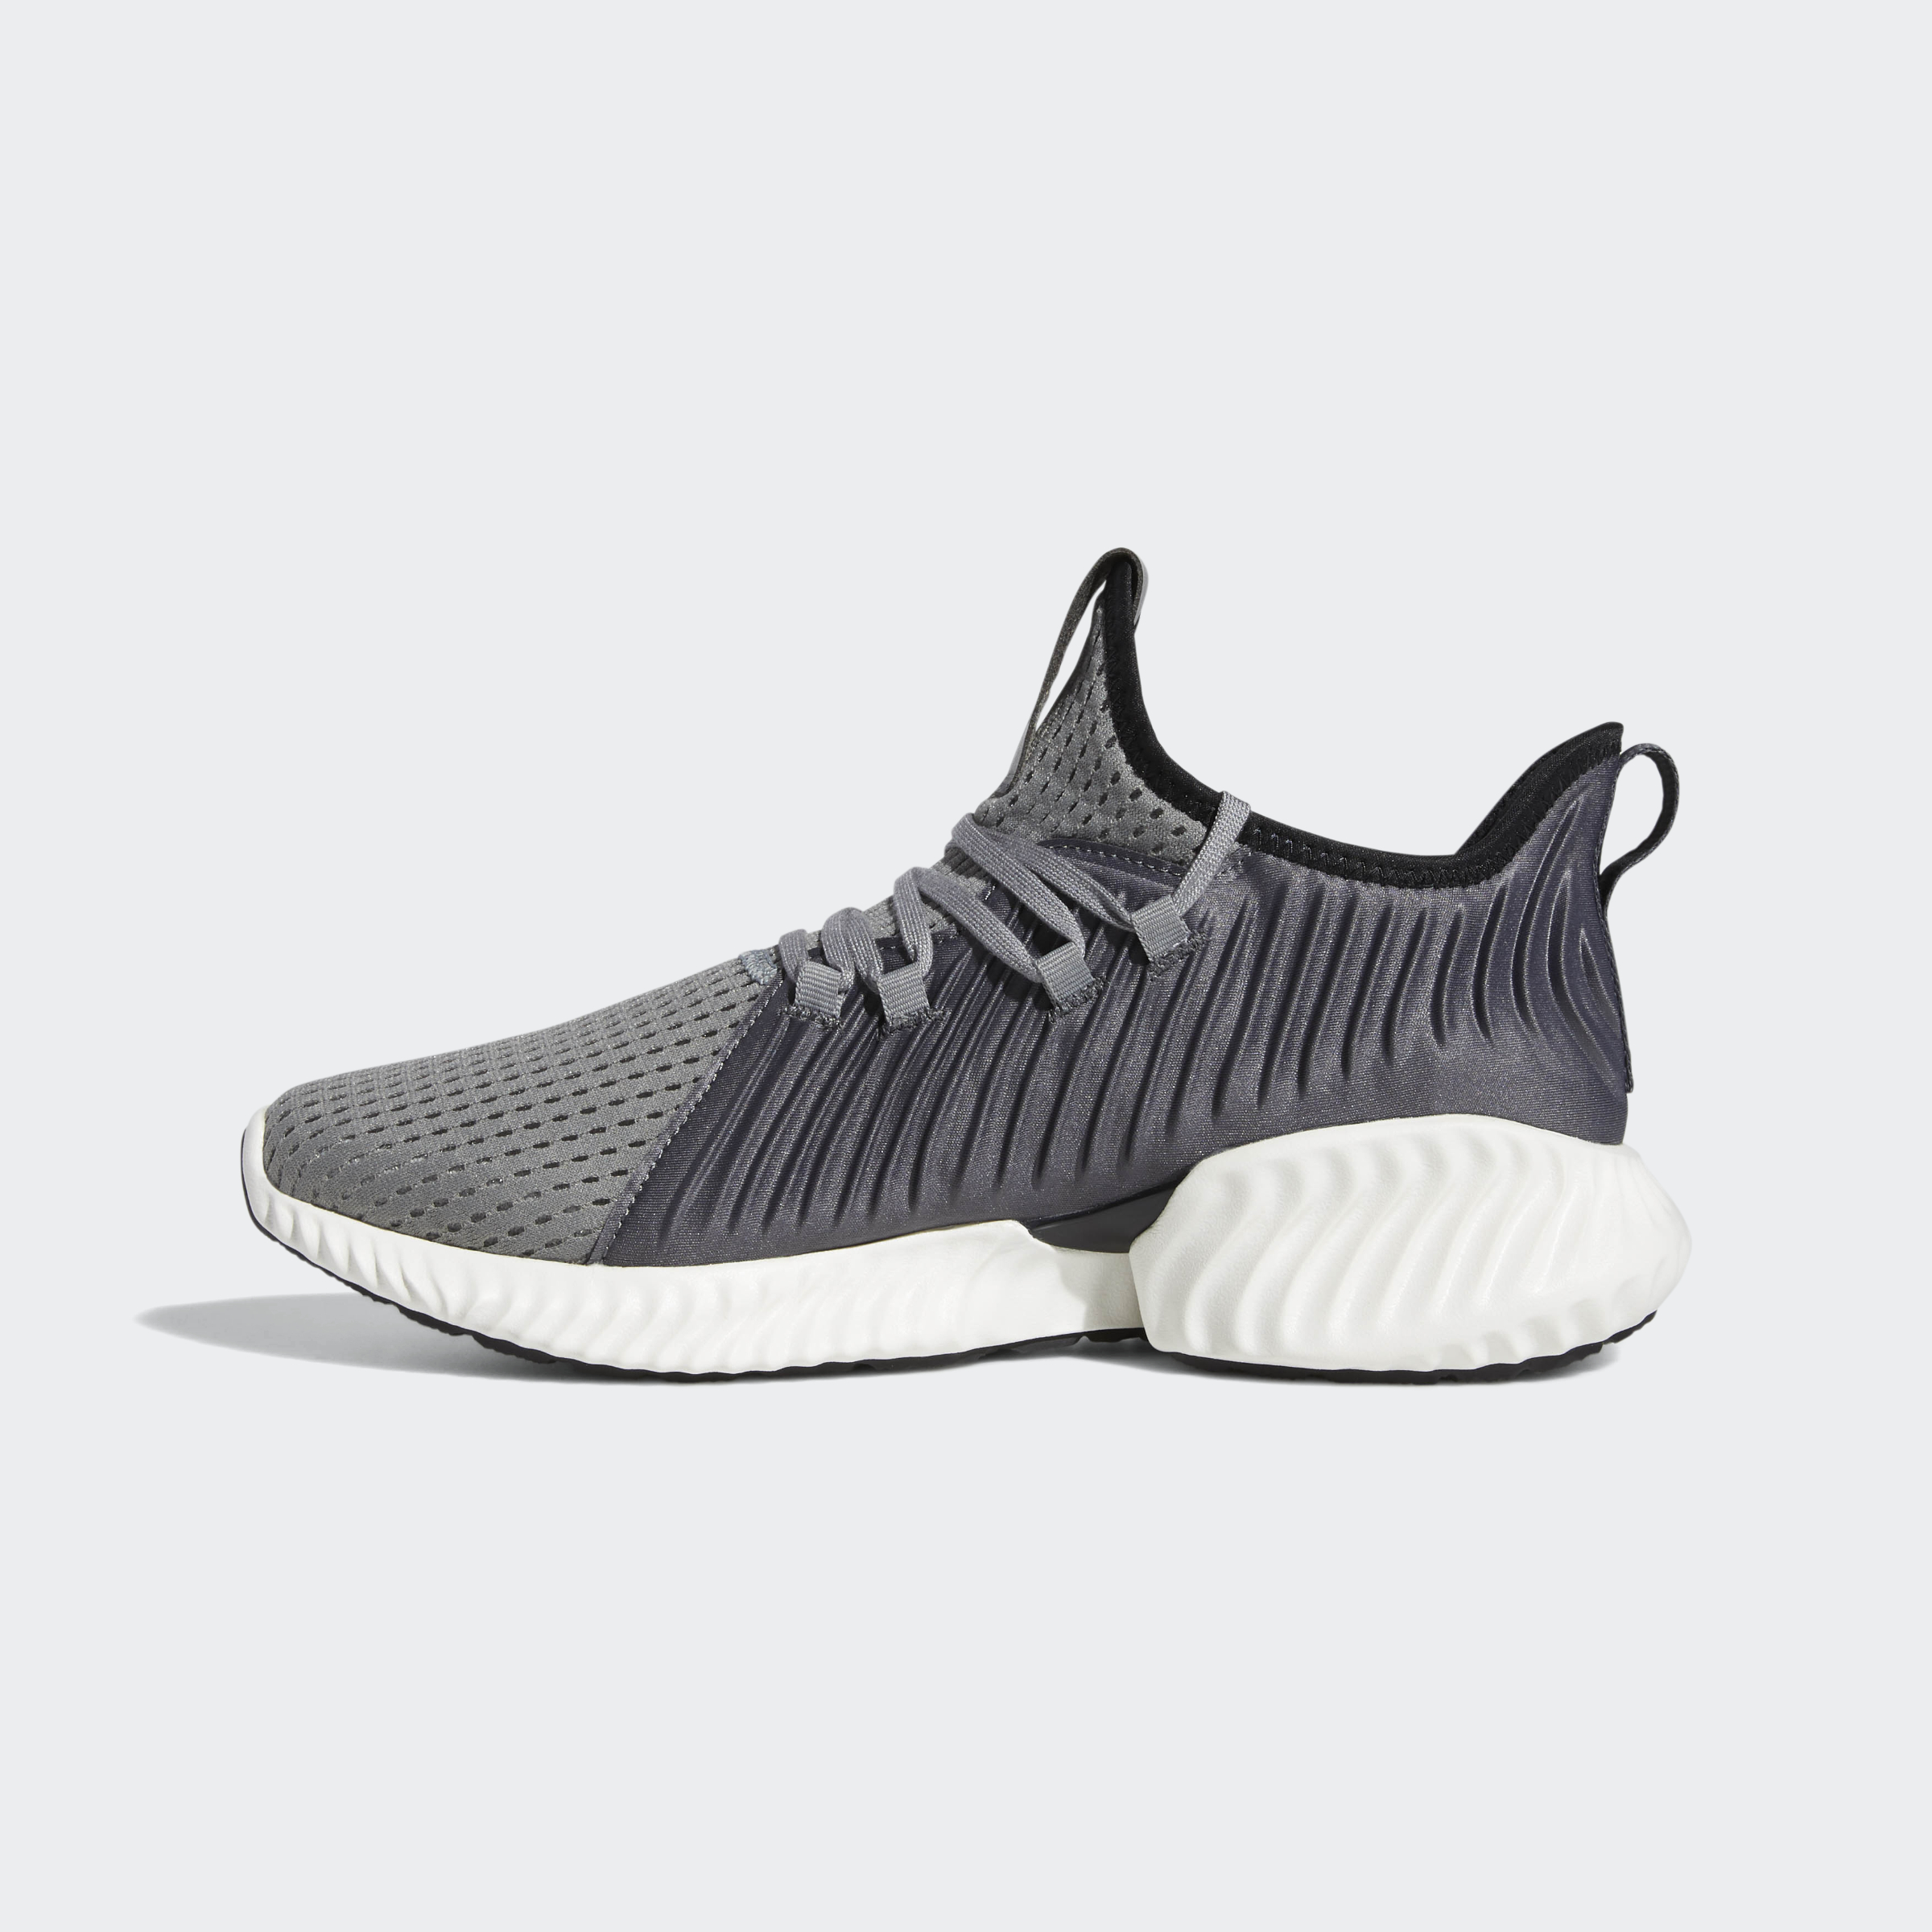 adidas-Alphabounce-Instinct-Clima-Shoes-Men-039-s-Athletic-amp-Sneakers thumbnail 11